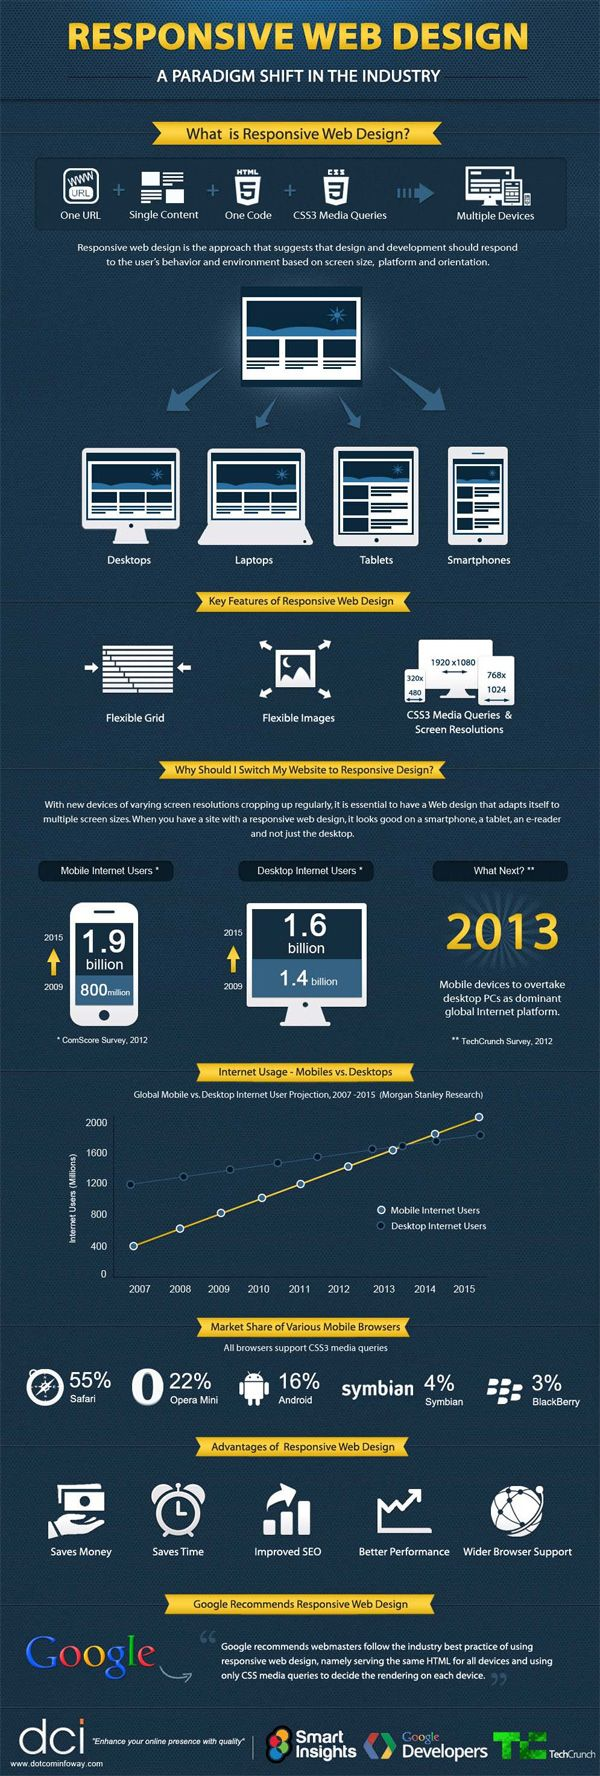 10 Infographics for Learning About Responsive Web Design